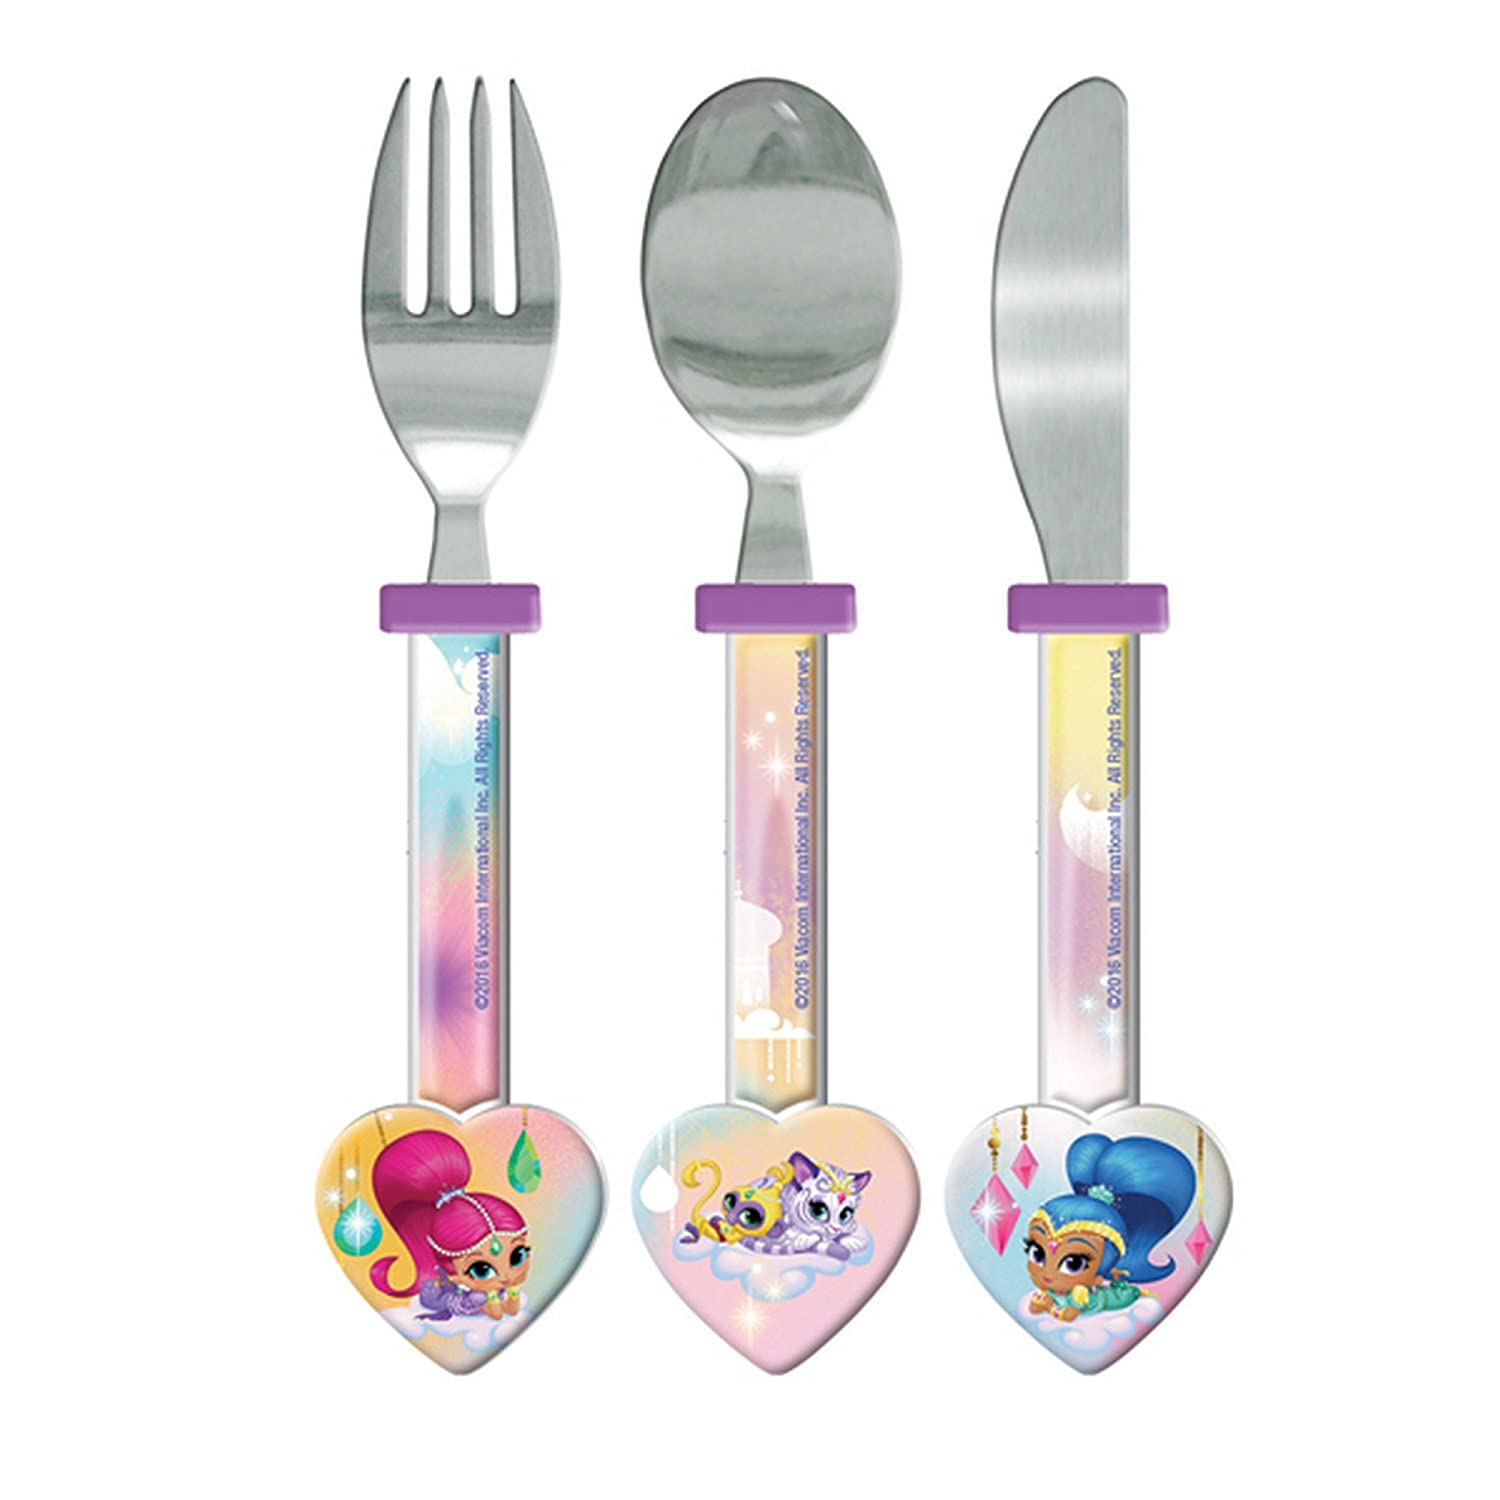 Shimmer And Shine Childrens/Girls Official 3 Piece Cutlery Set (One Size) (Purple) UTSG11444_1